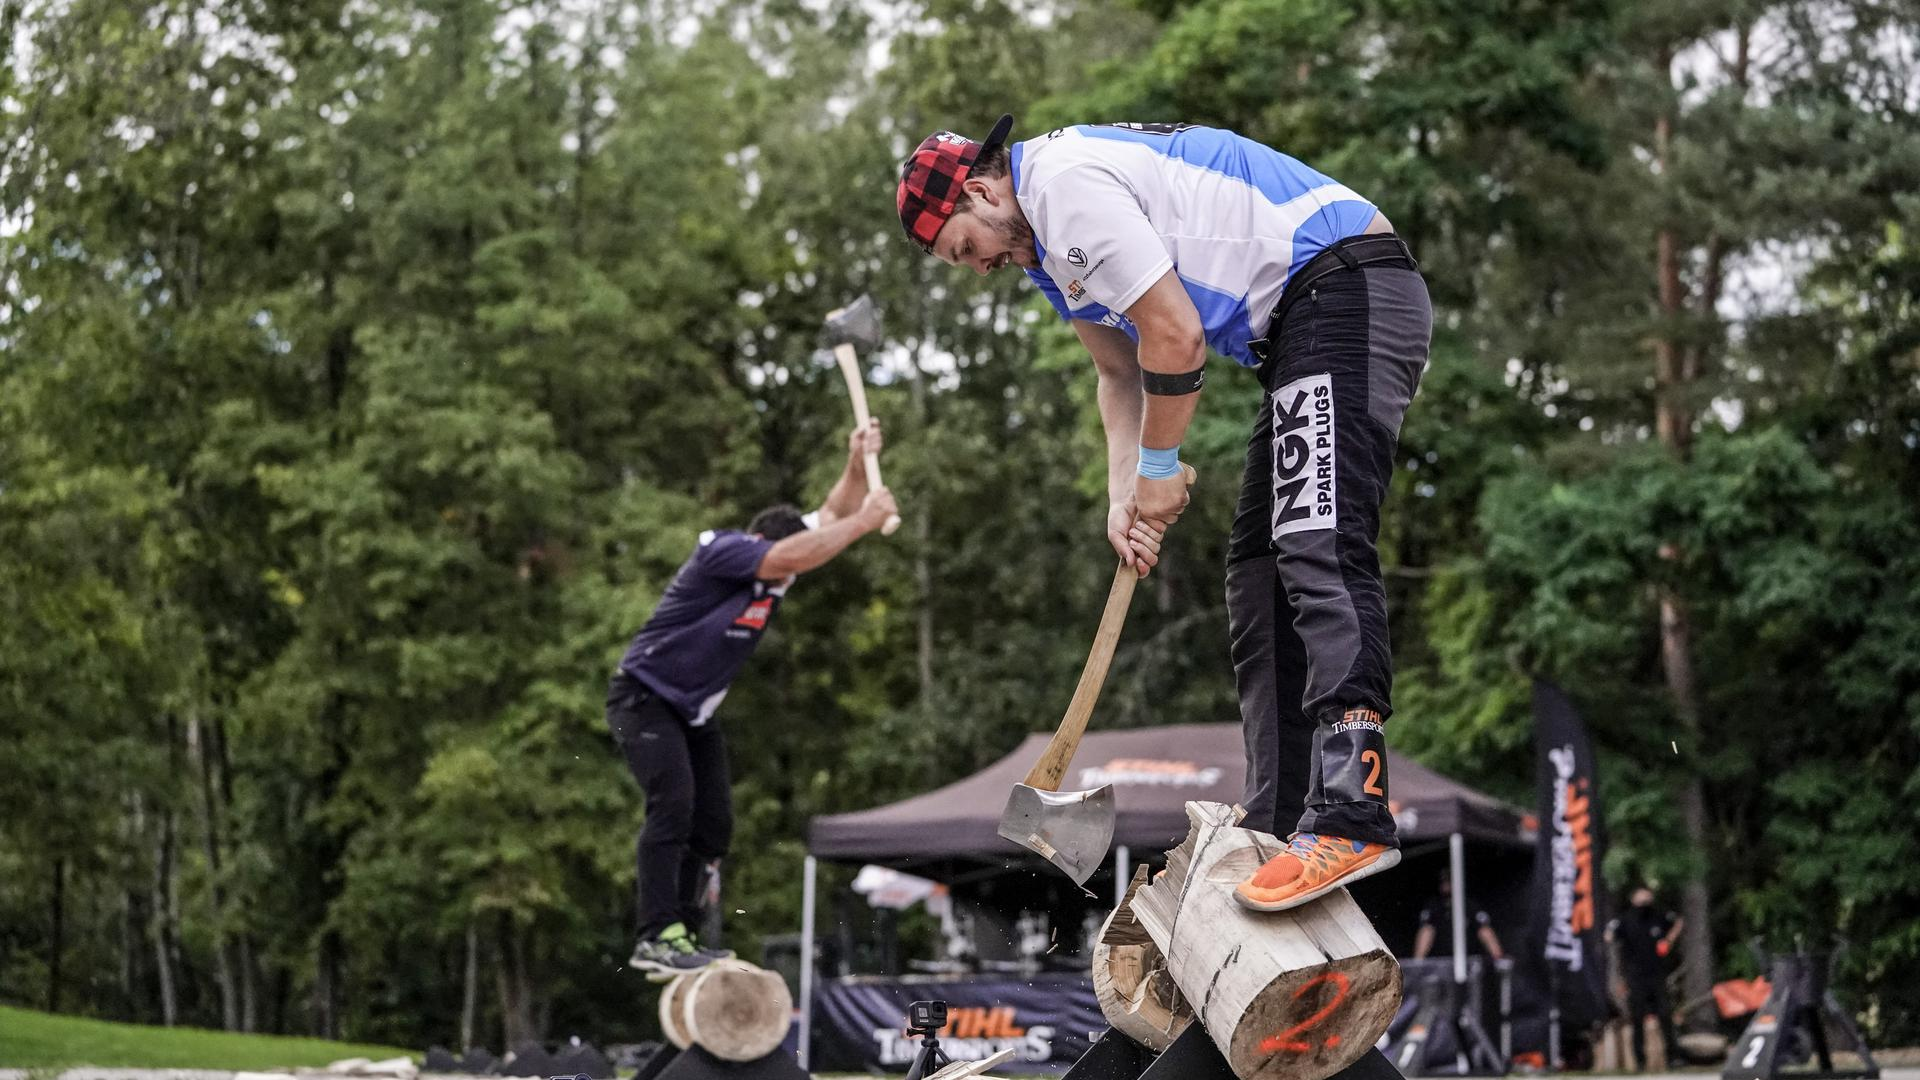 Robert Ebner of Germany competes in the Underhand Chop discipline during the STIHL TIMBERSPORTS® Amarok Cup in Mellrichstadt, Germany on August 23, 2020.